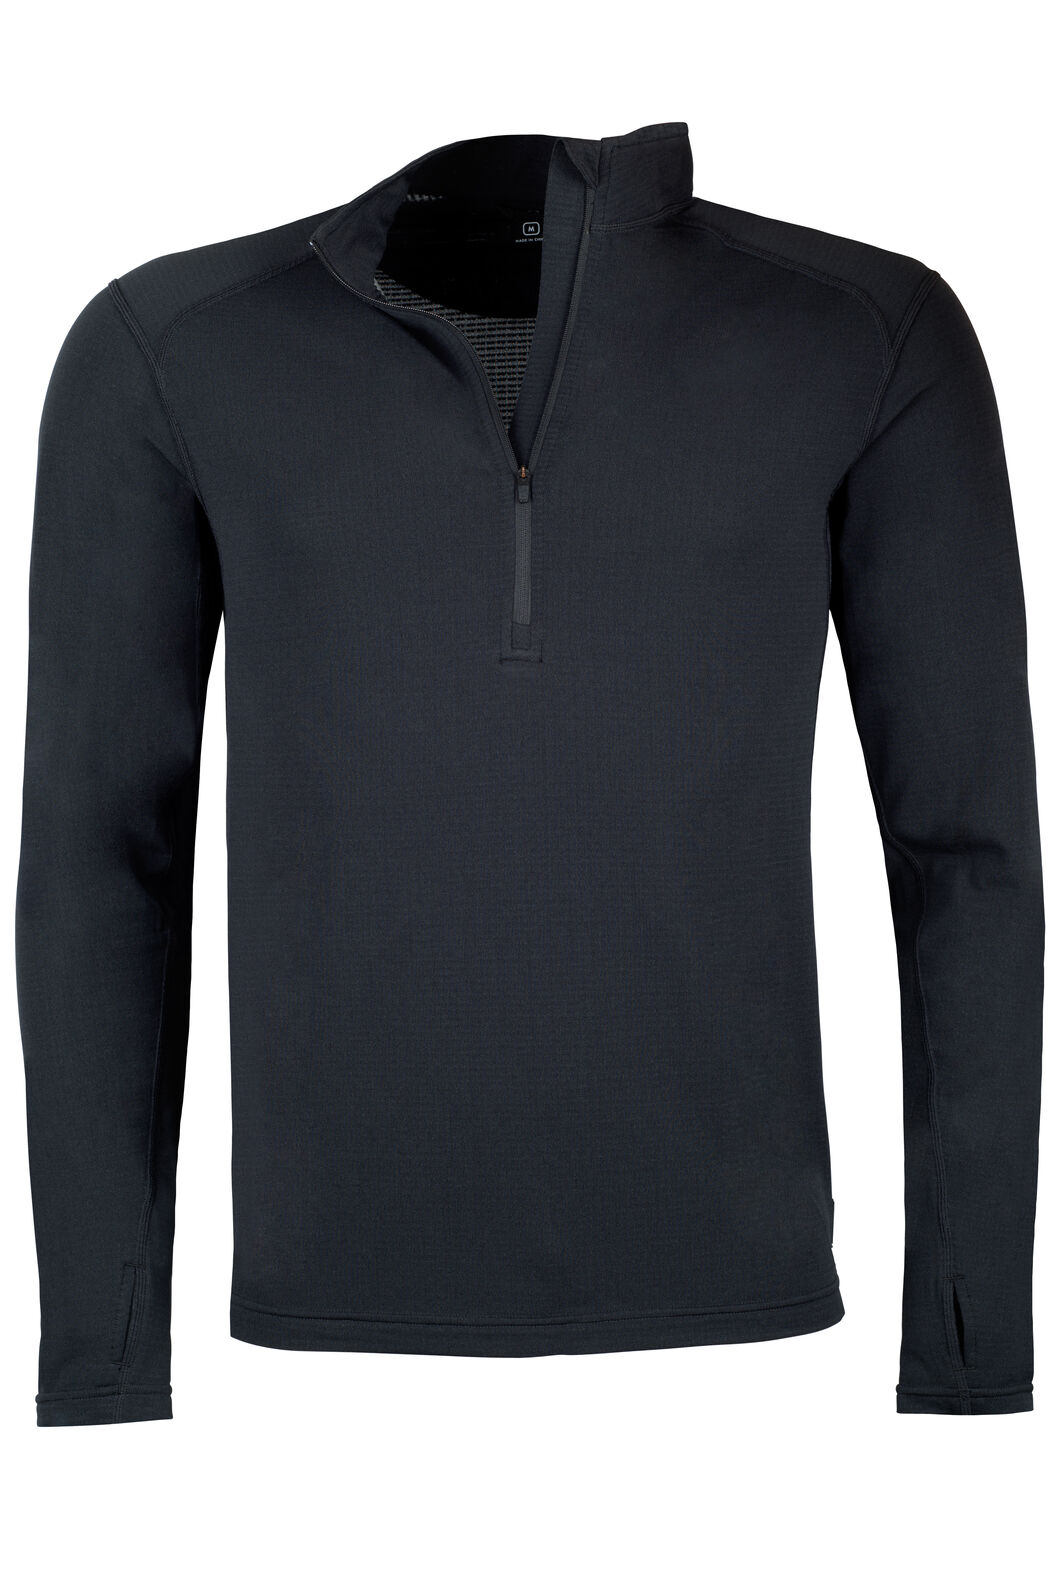 Macpac Prothermal Polartec® Long Sleeve Top — Men's, Black, hi-res